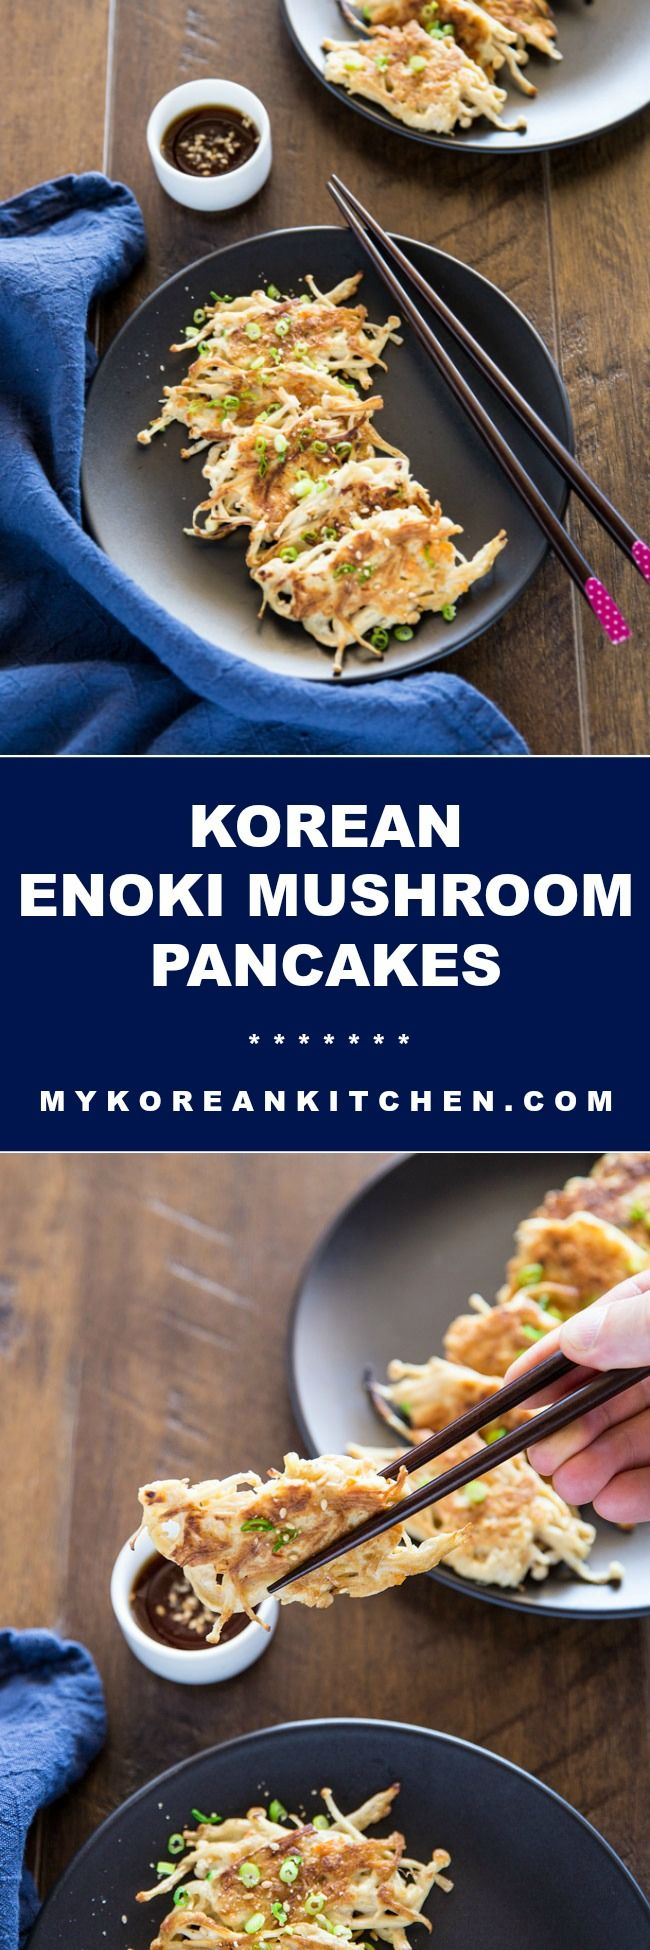 Korean style mushroom fritters | MyKoreanKitchen.com  Use gluten-free all purpose flour for a gluten-free option.